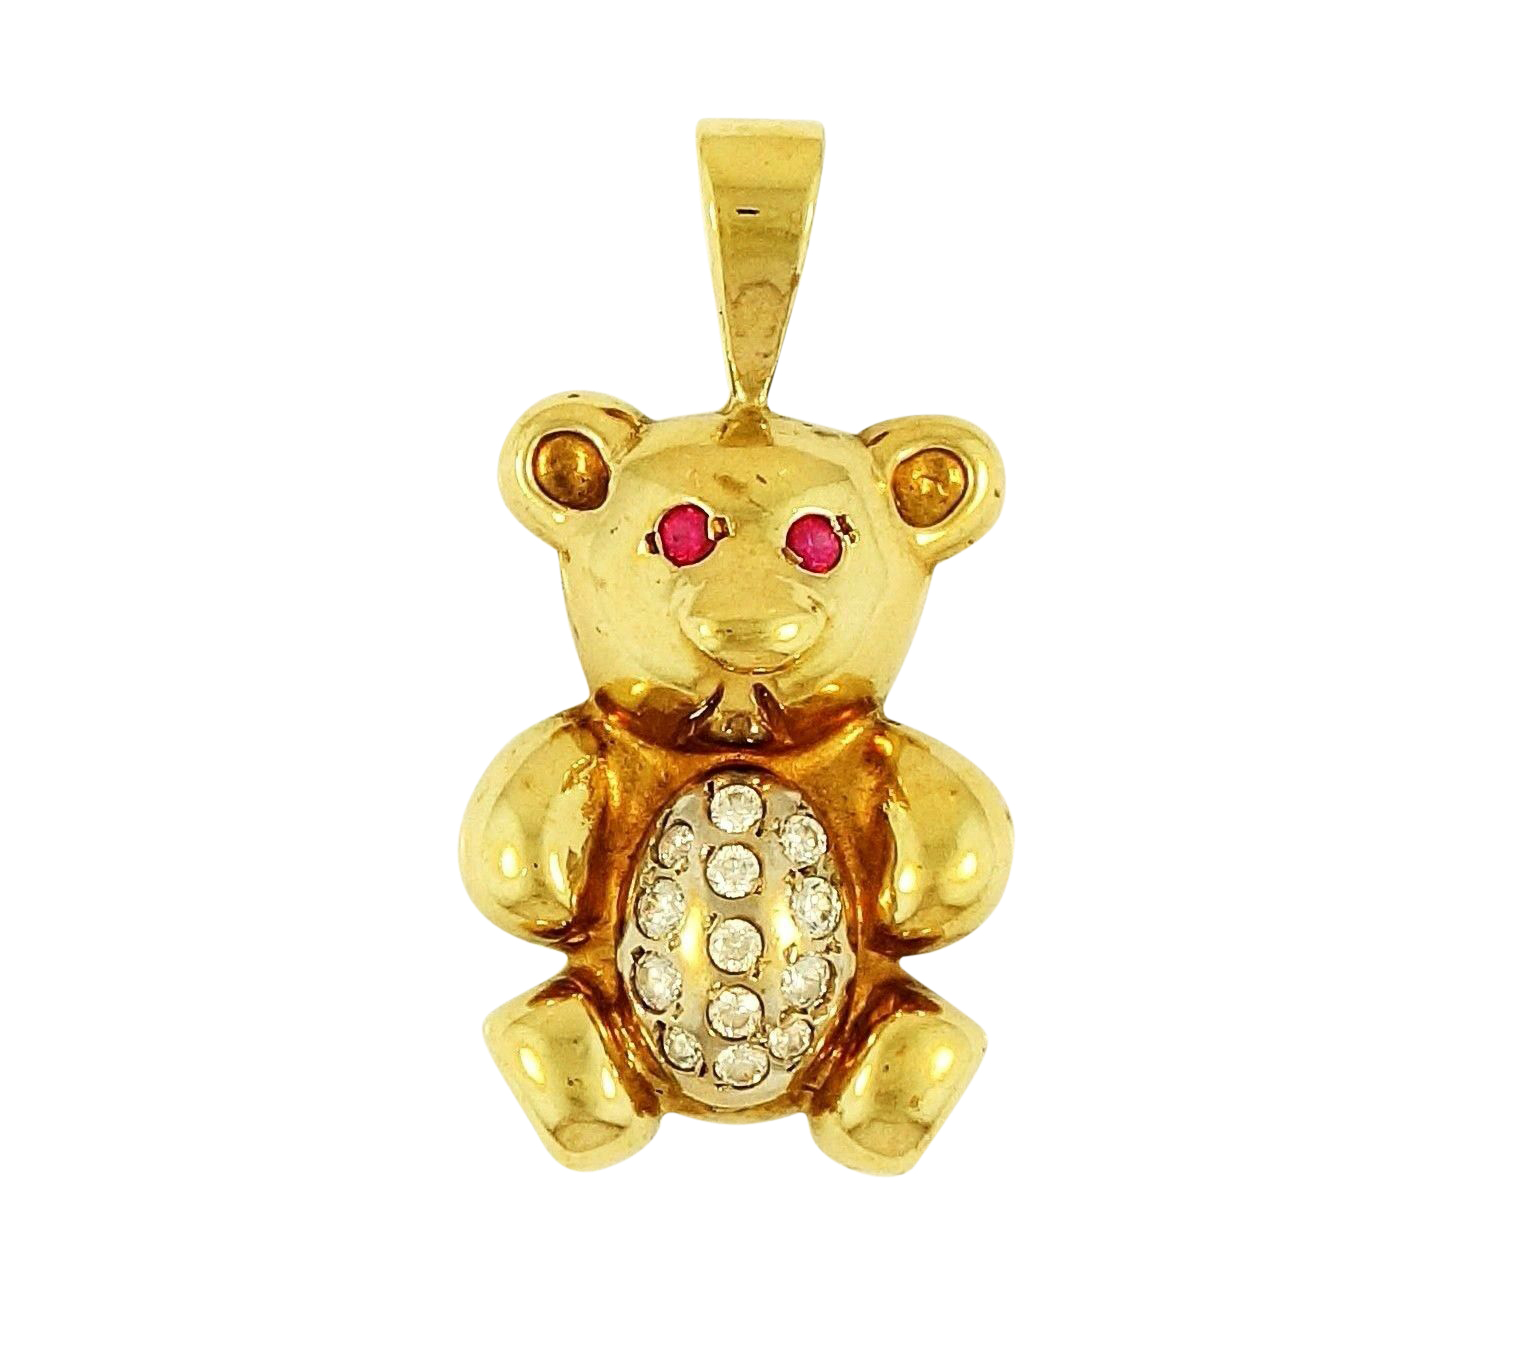 9carat Yellow Gold Simulated Diamond Teddy Bear Pendant